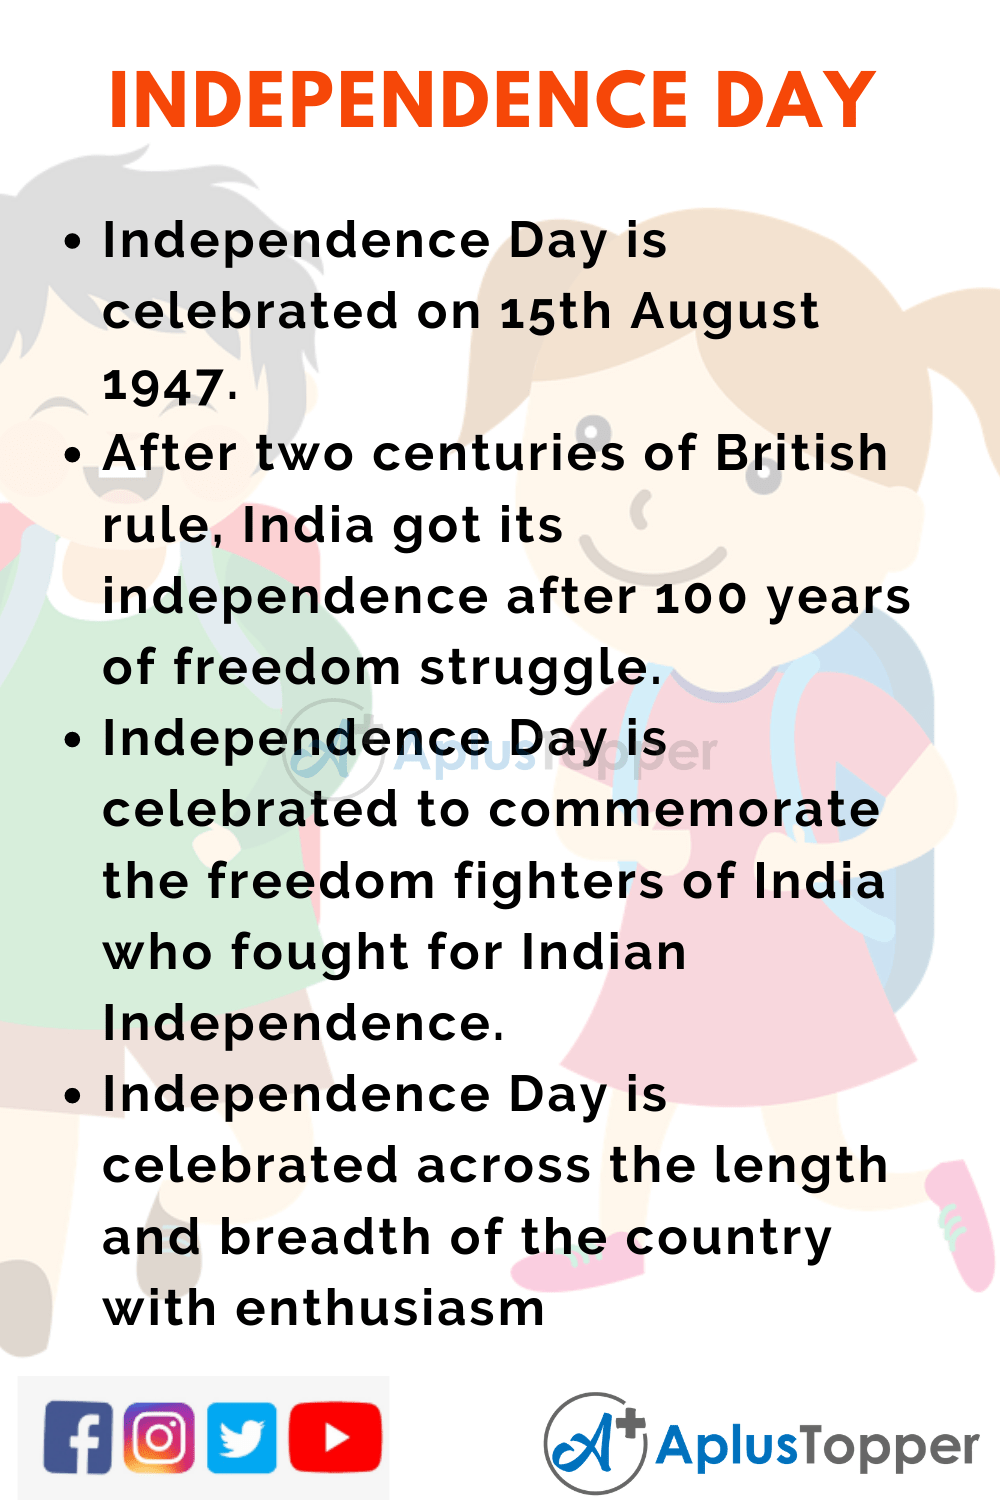 10 Lines On Independence Day For Students And Children In English A Plus Topper Lines On Independence Day Independence Day Independence Day Speech